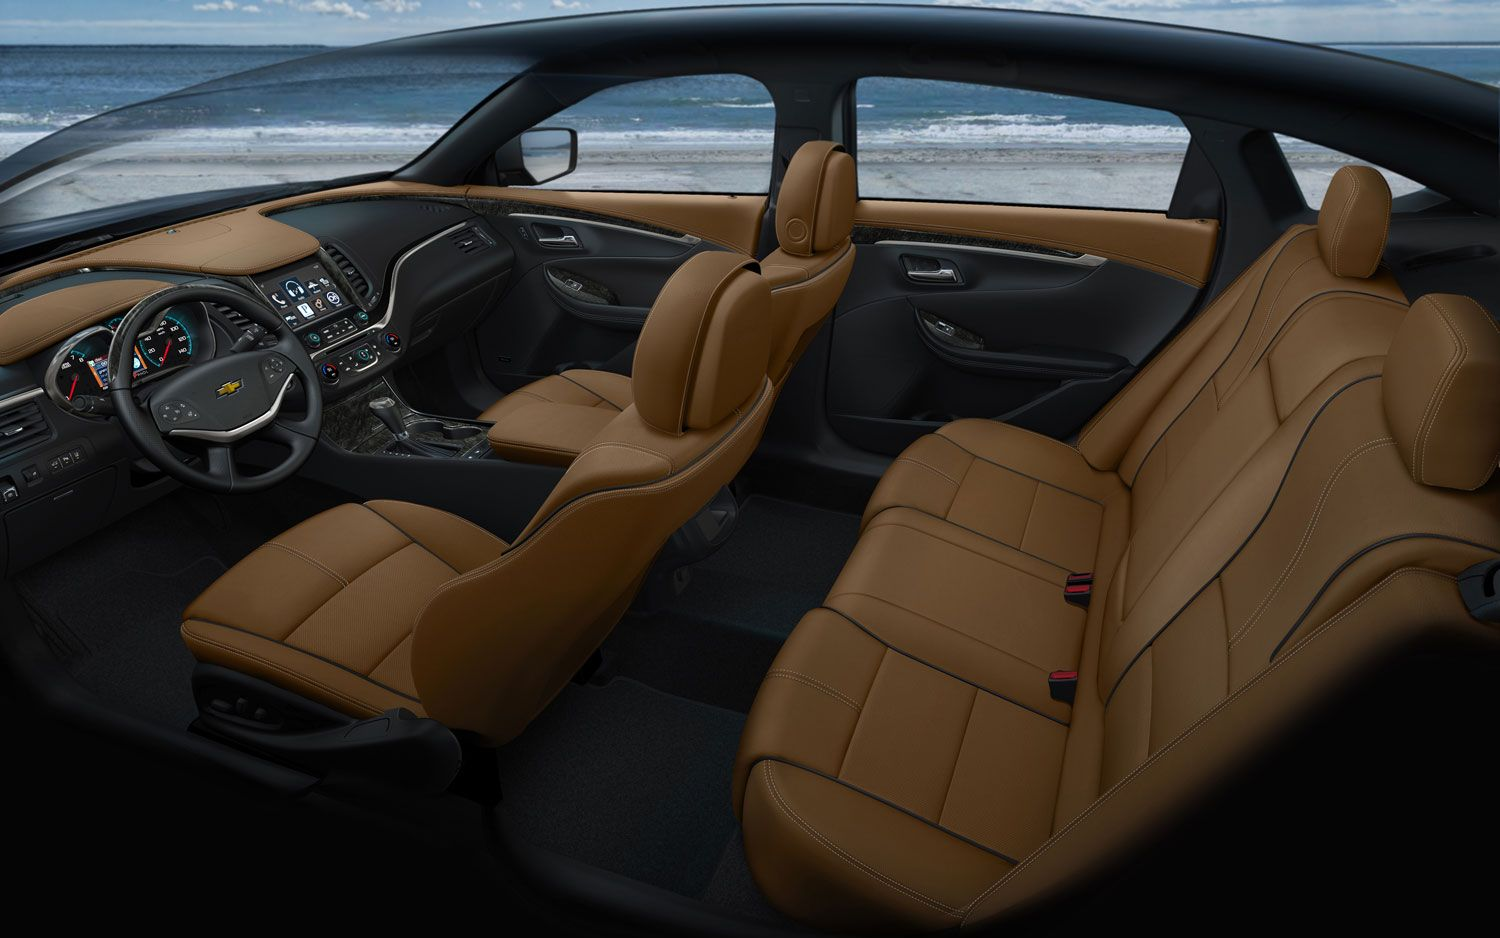 2012 New York Updated 2014 Chevy Impala And 2013 Chevy Traverse